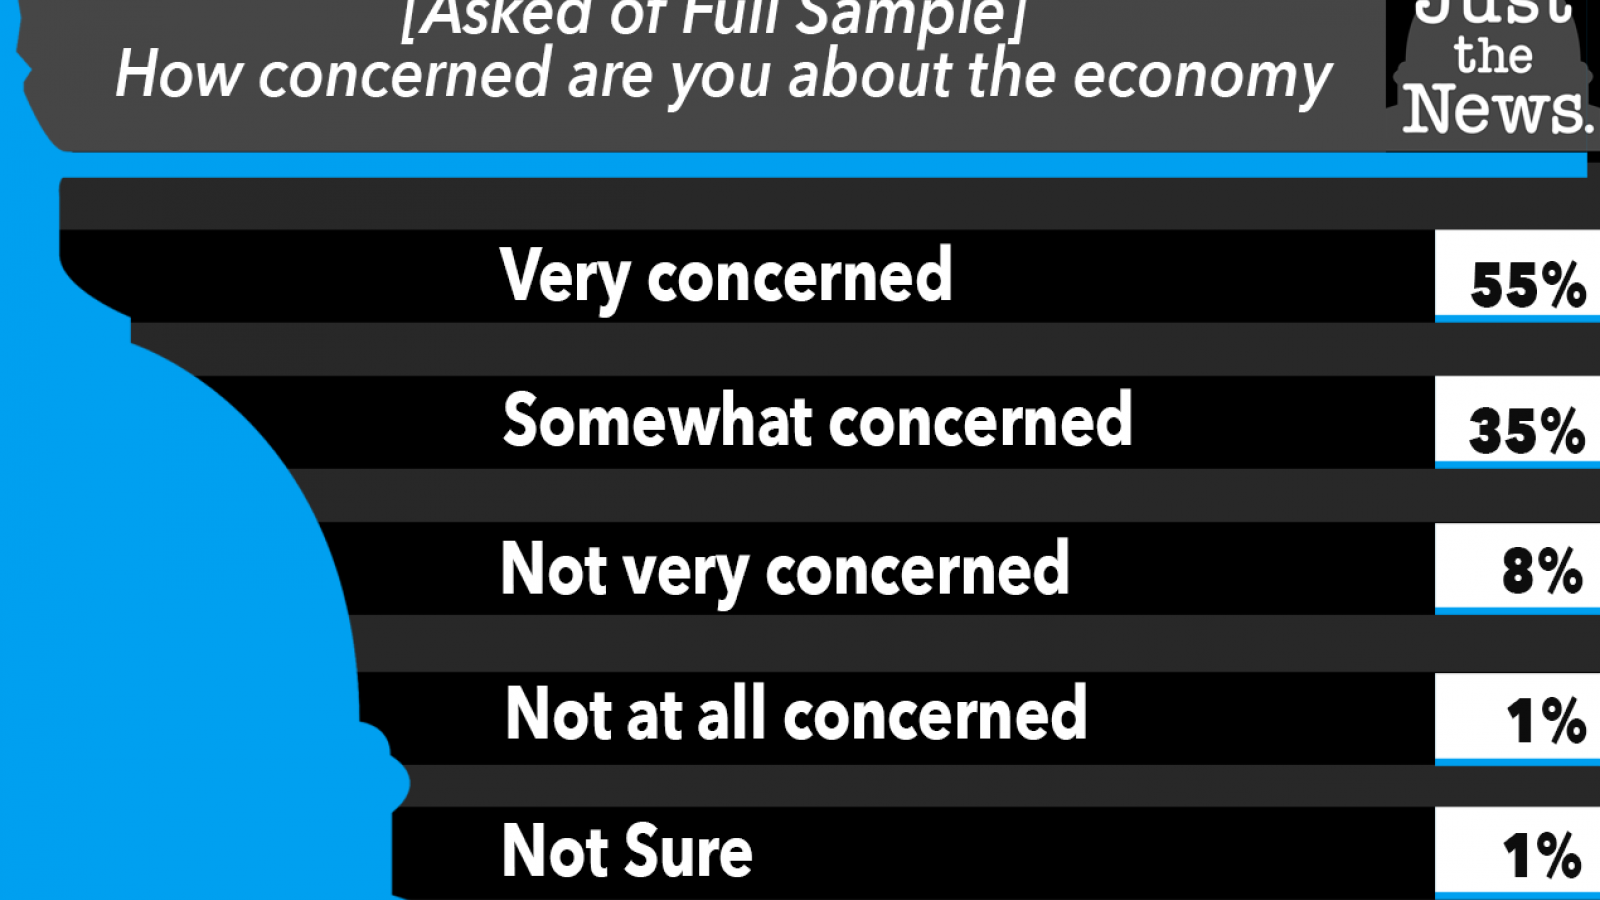 Just the News Poll, How concerned are you about the economy?